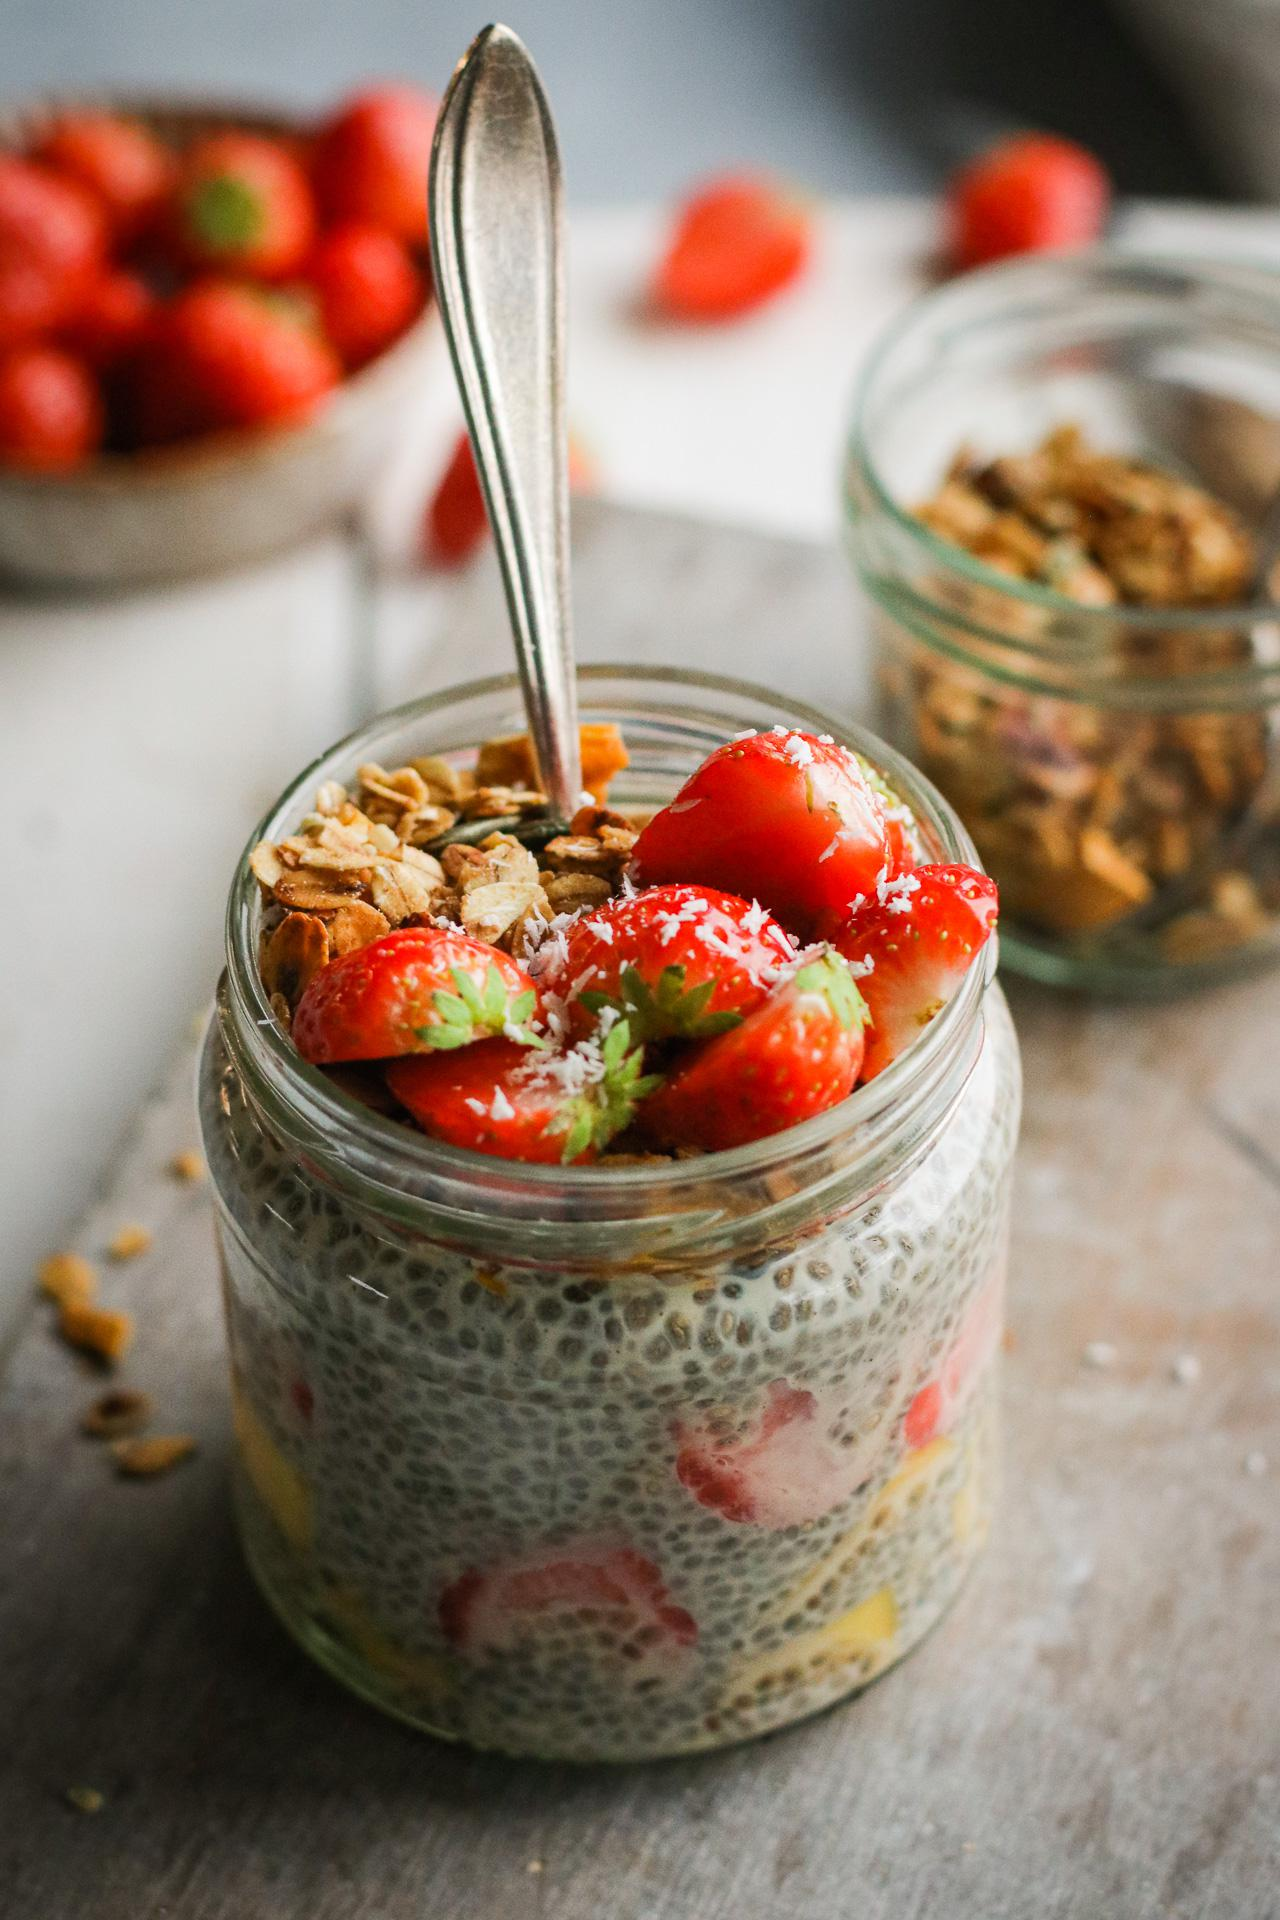 Main image of Vanilla Chia Pudding with Mixed Fruit